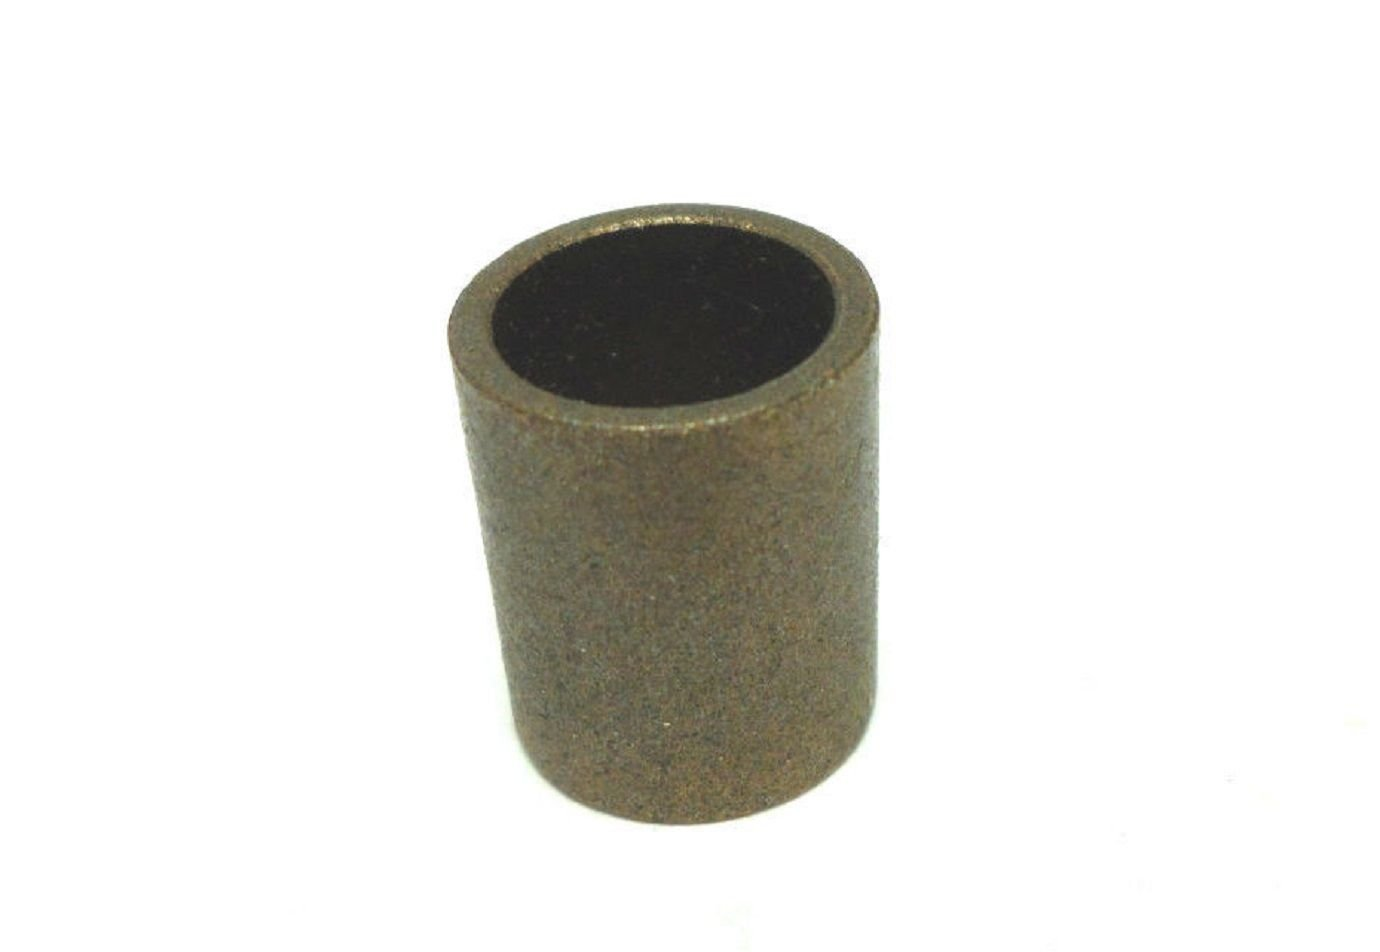 Carquest X4247 Disc Brake Bushing X-4427 4427 by Carquest